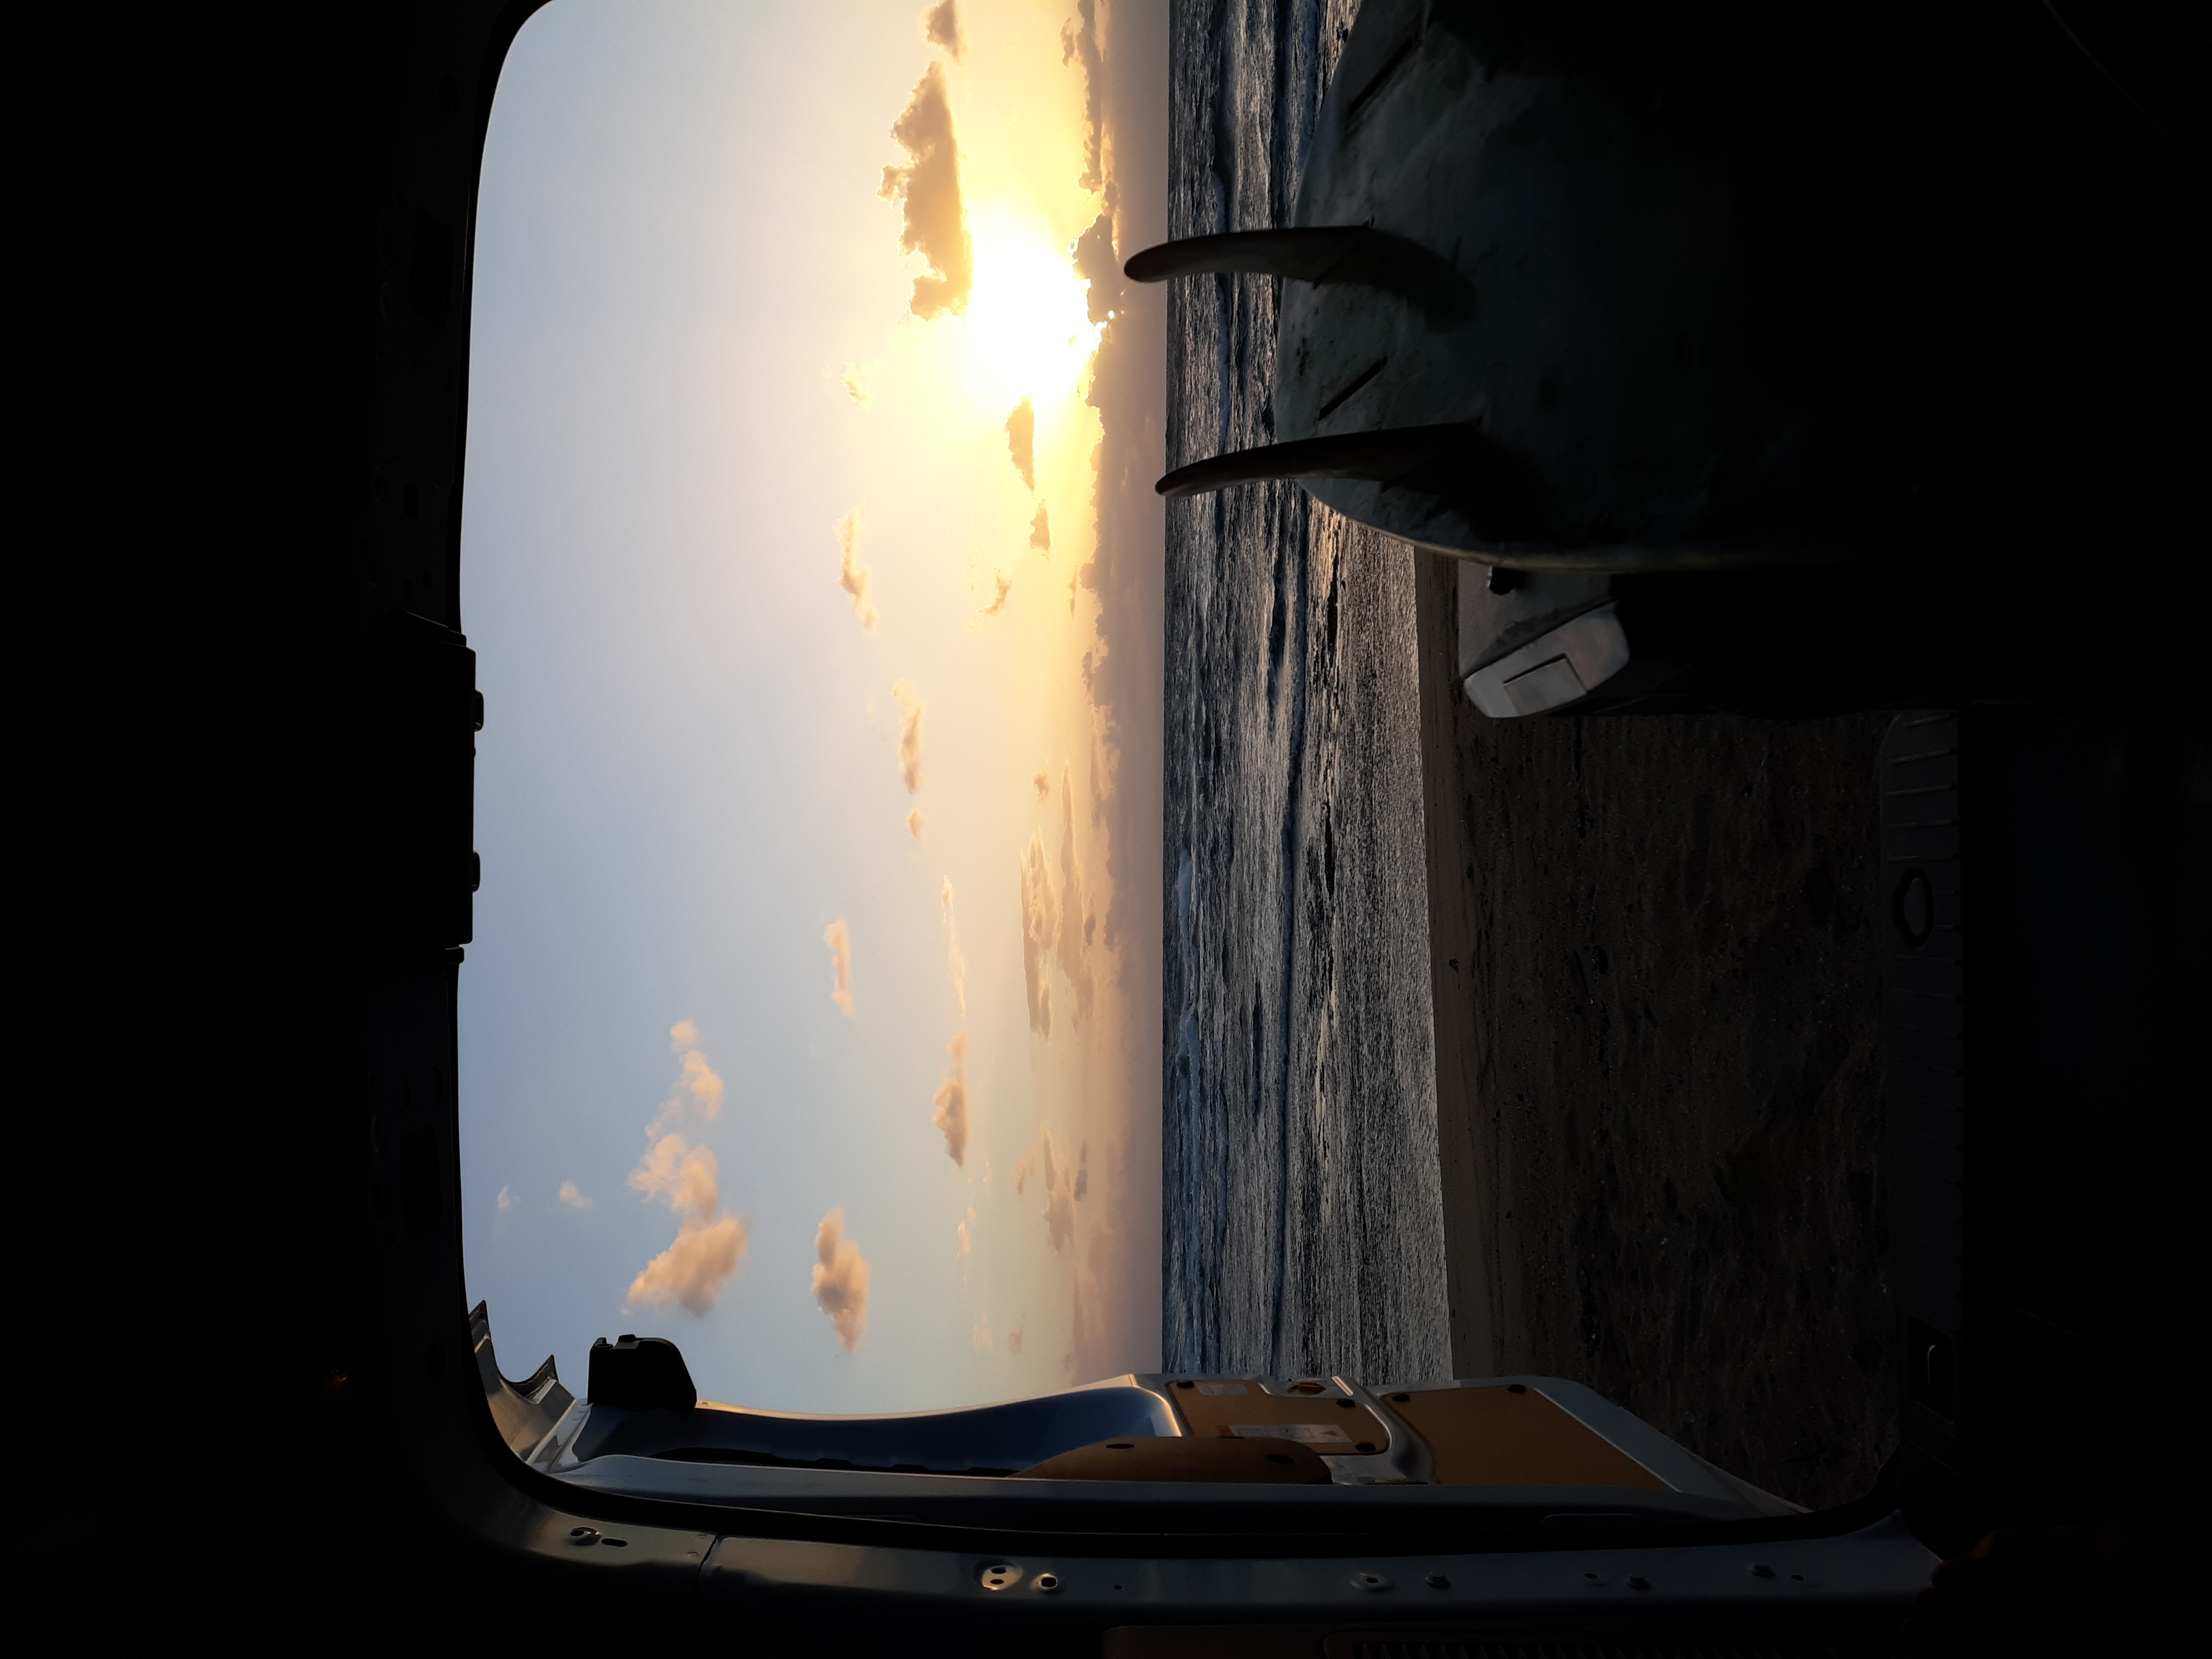 Set up and watch the sun set feet away from the ocean. Let me give advice on great spots to get away.. Ford Transit 2019